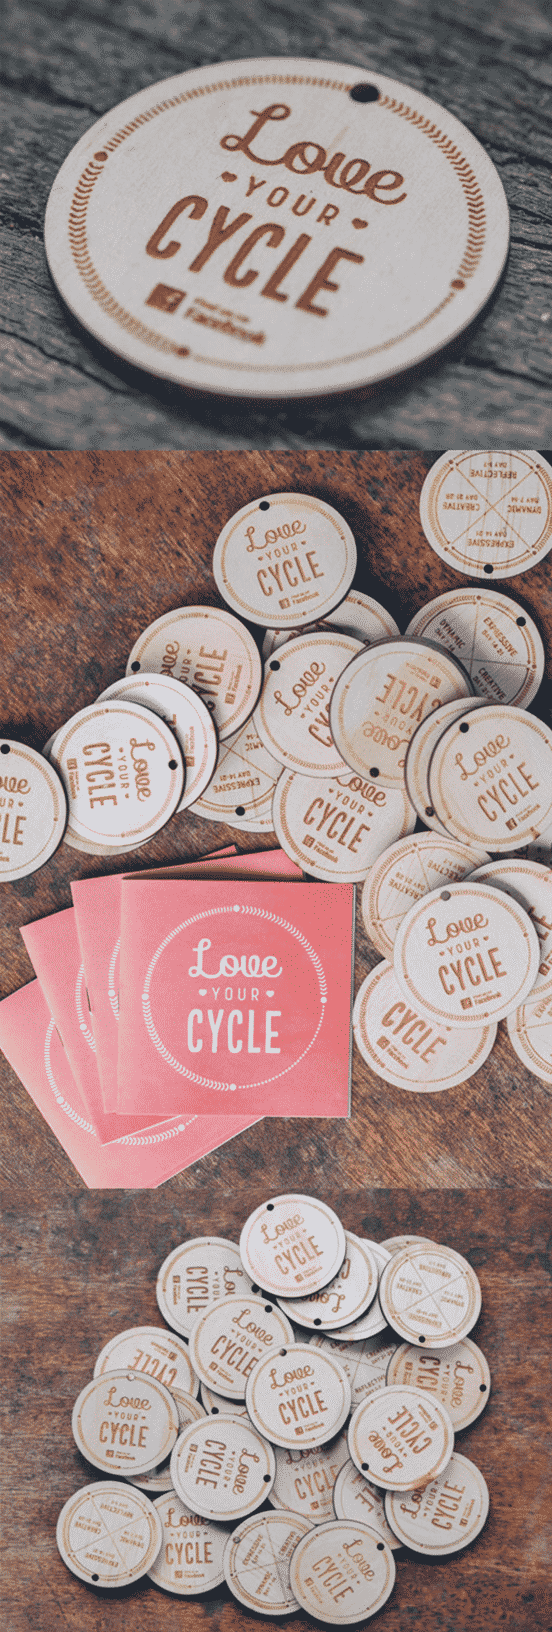 Wooden Circular Business Card